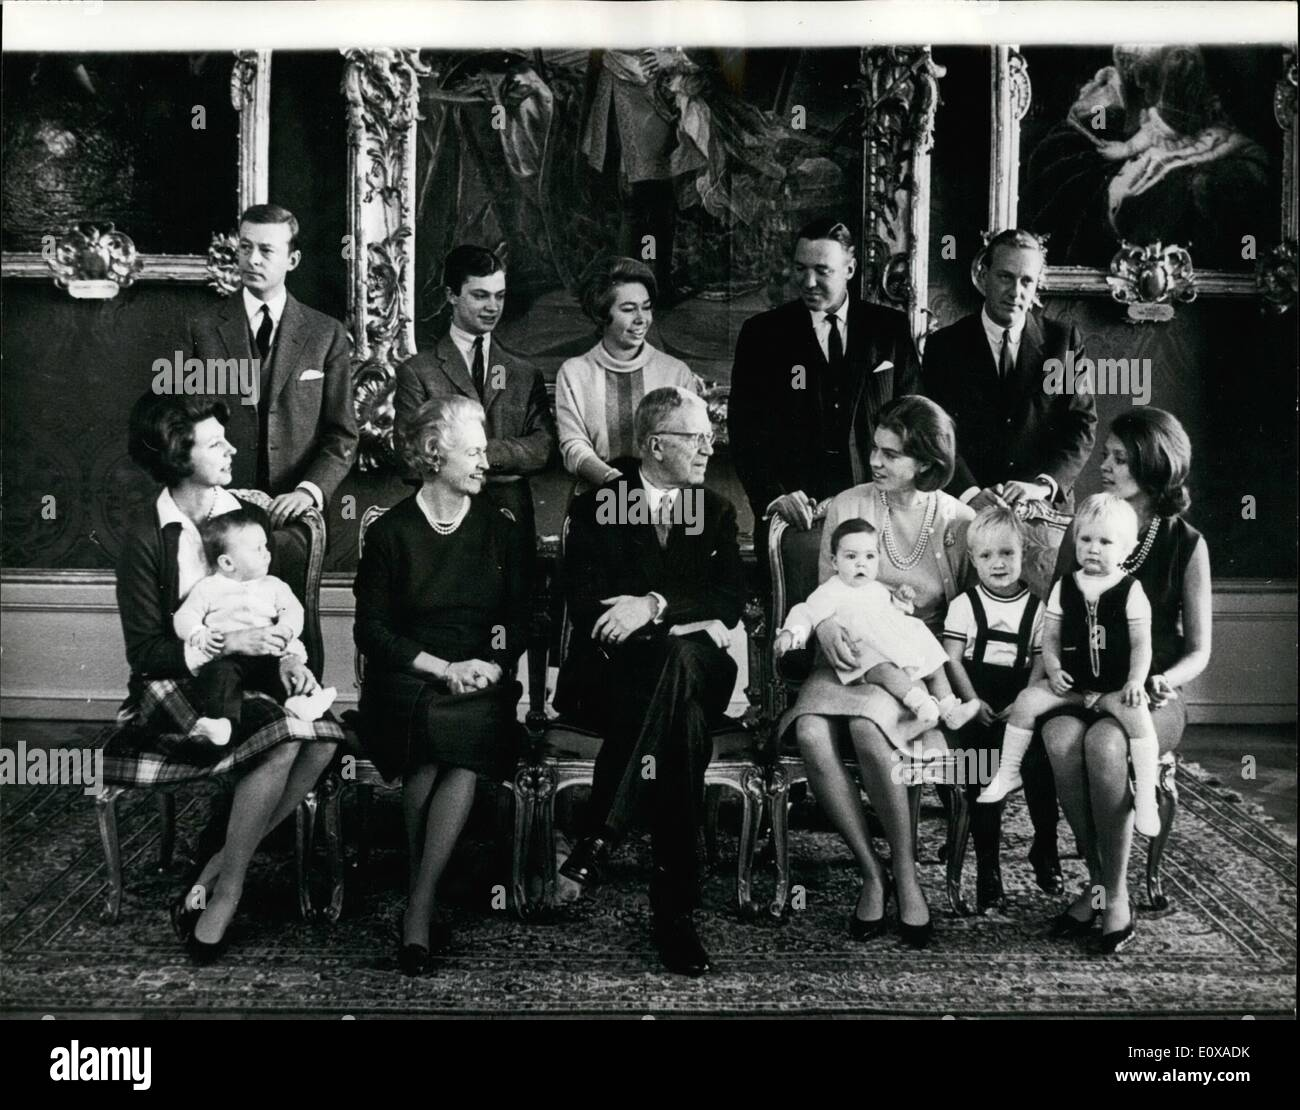 Jan. 01, 1966 - Swedish Princesses and their Husbands and Children Celebrate New Year with King Gustav Adolf: There was a family reunion in the Swedish Royal Family when Princess Sibylla, together with her daughters, their husbands and children were guests of King Gustav Adolf at Drottningholm Palace, outside Stockholm to celebrate the New Year. Photo shows The Family gathering (L. to R - Stock Image